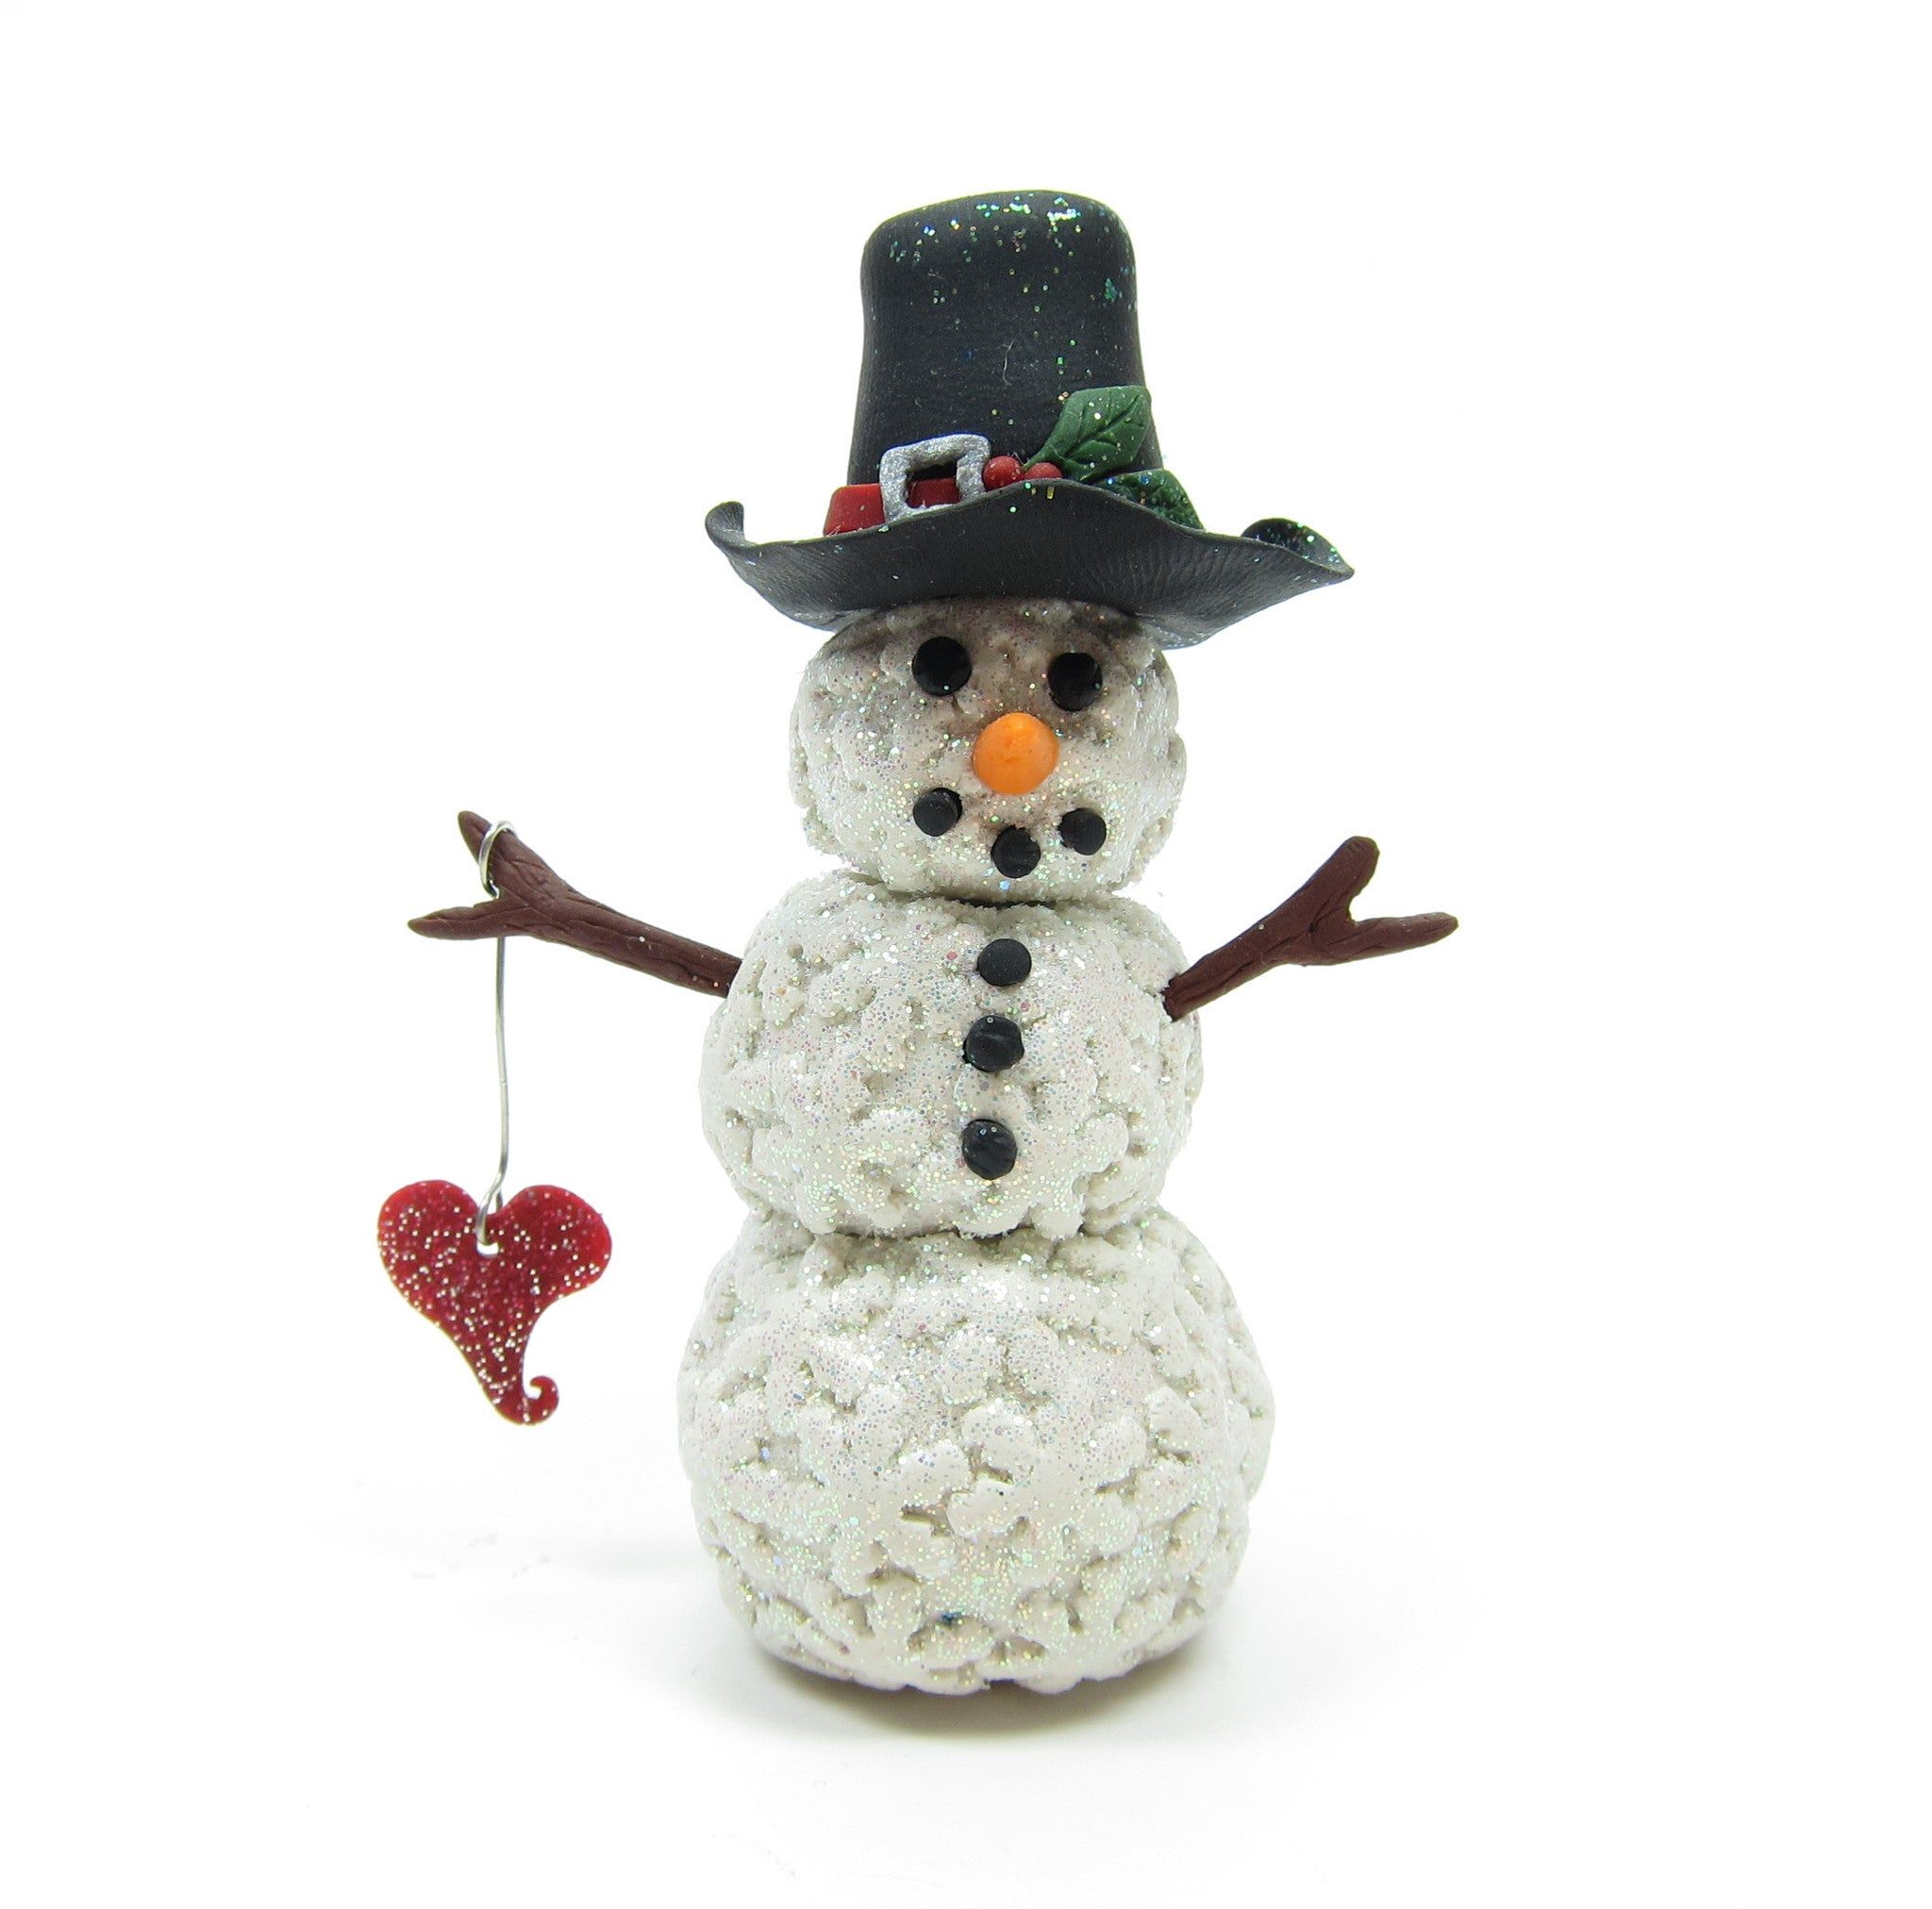 Polymer Clay Christmas Village.Snowman Miniature Figurine Polymer Clay Sculpture With